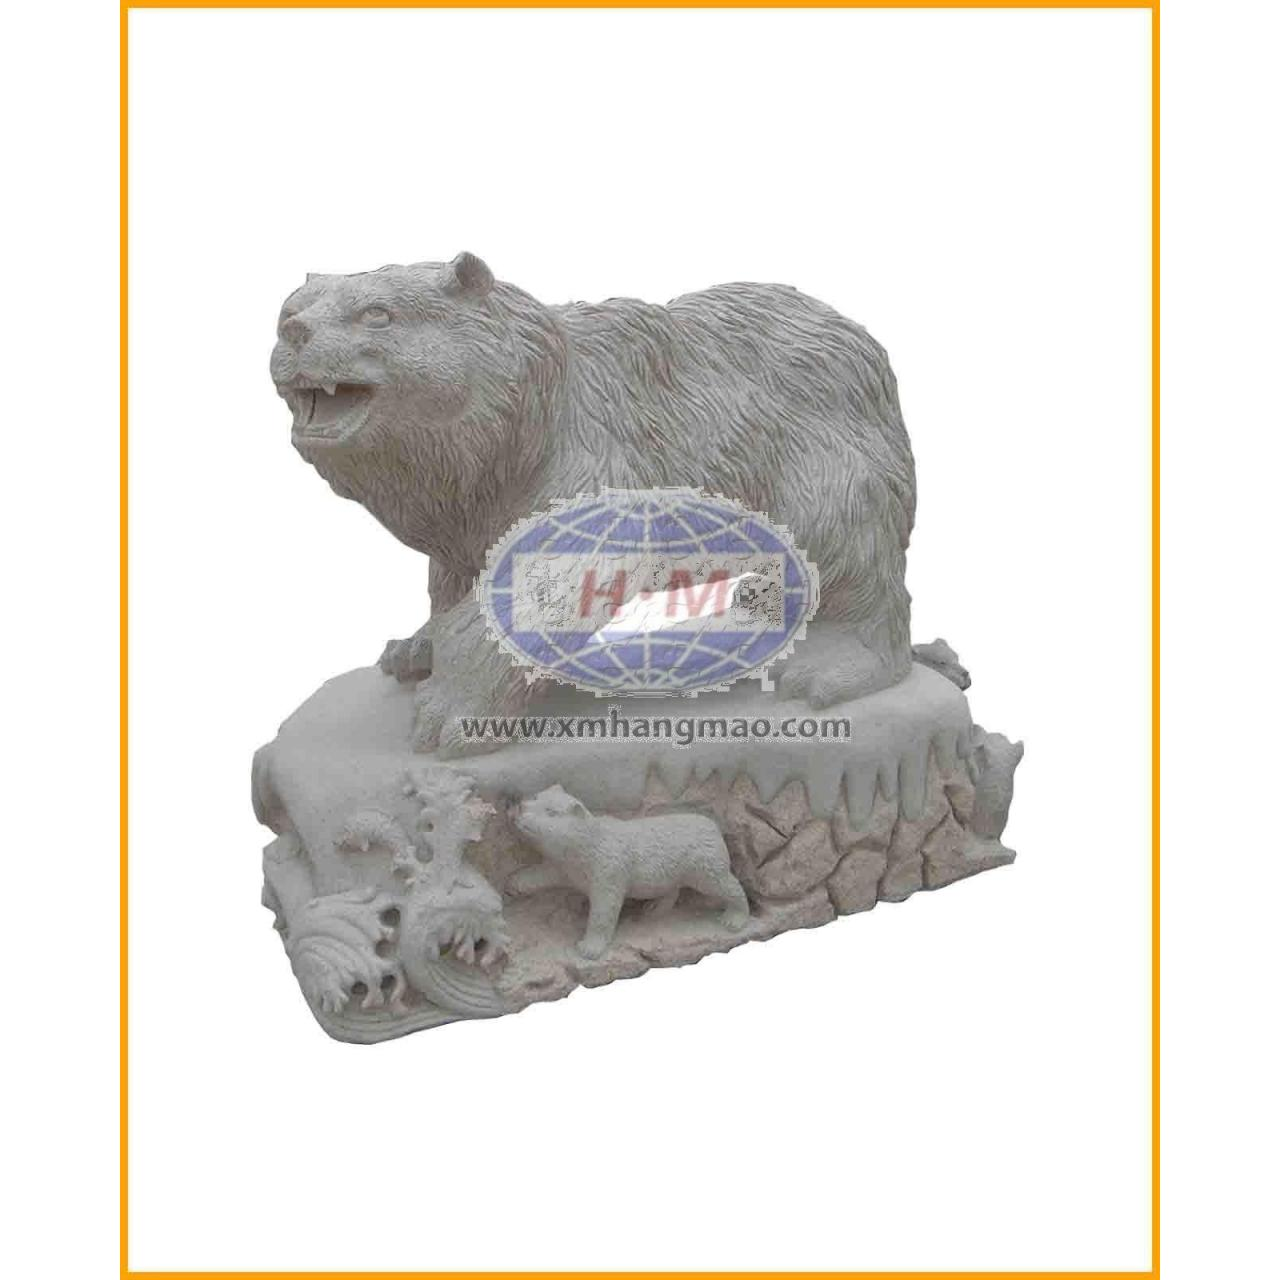 g681 granite g684 granite g682 granite g654 granite small animals for sale